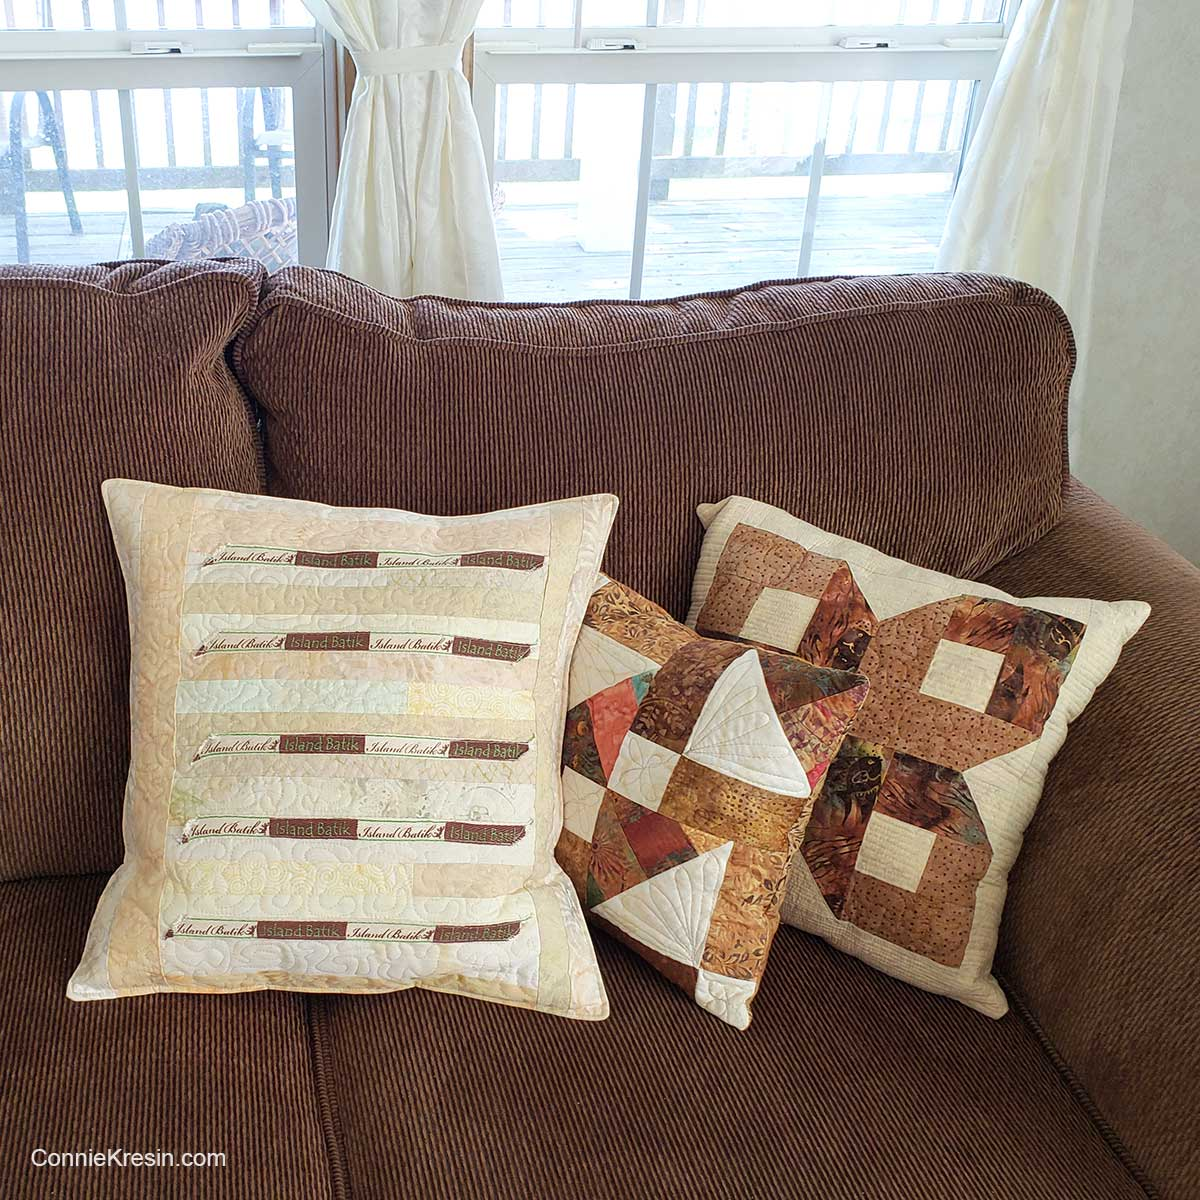 Quilted pillows including the label pillow on couch